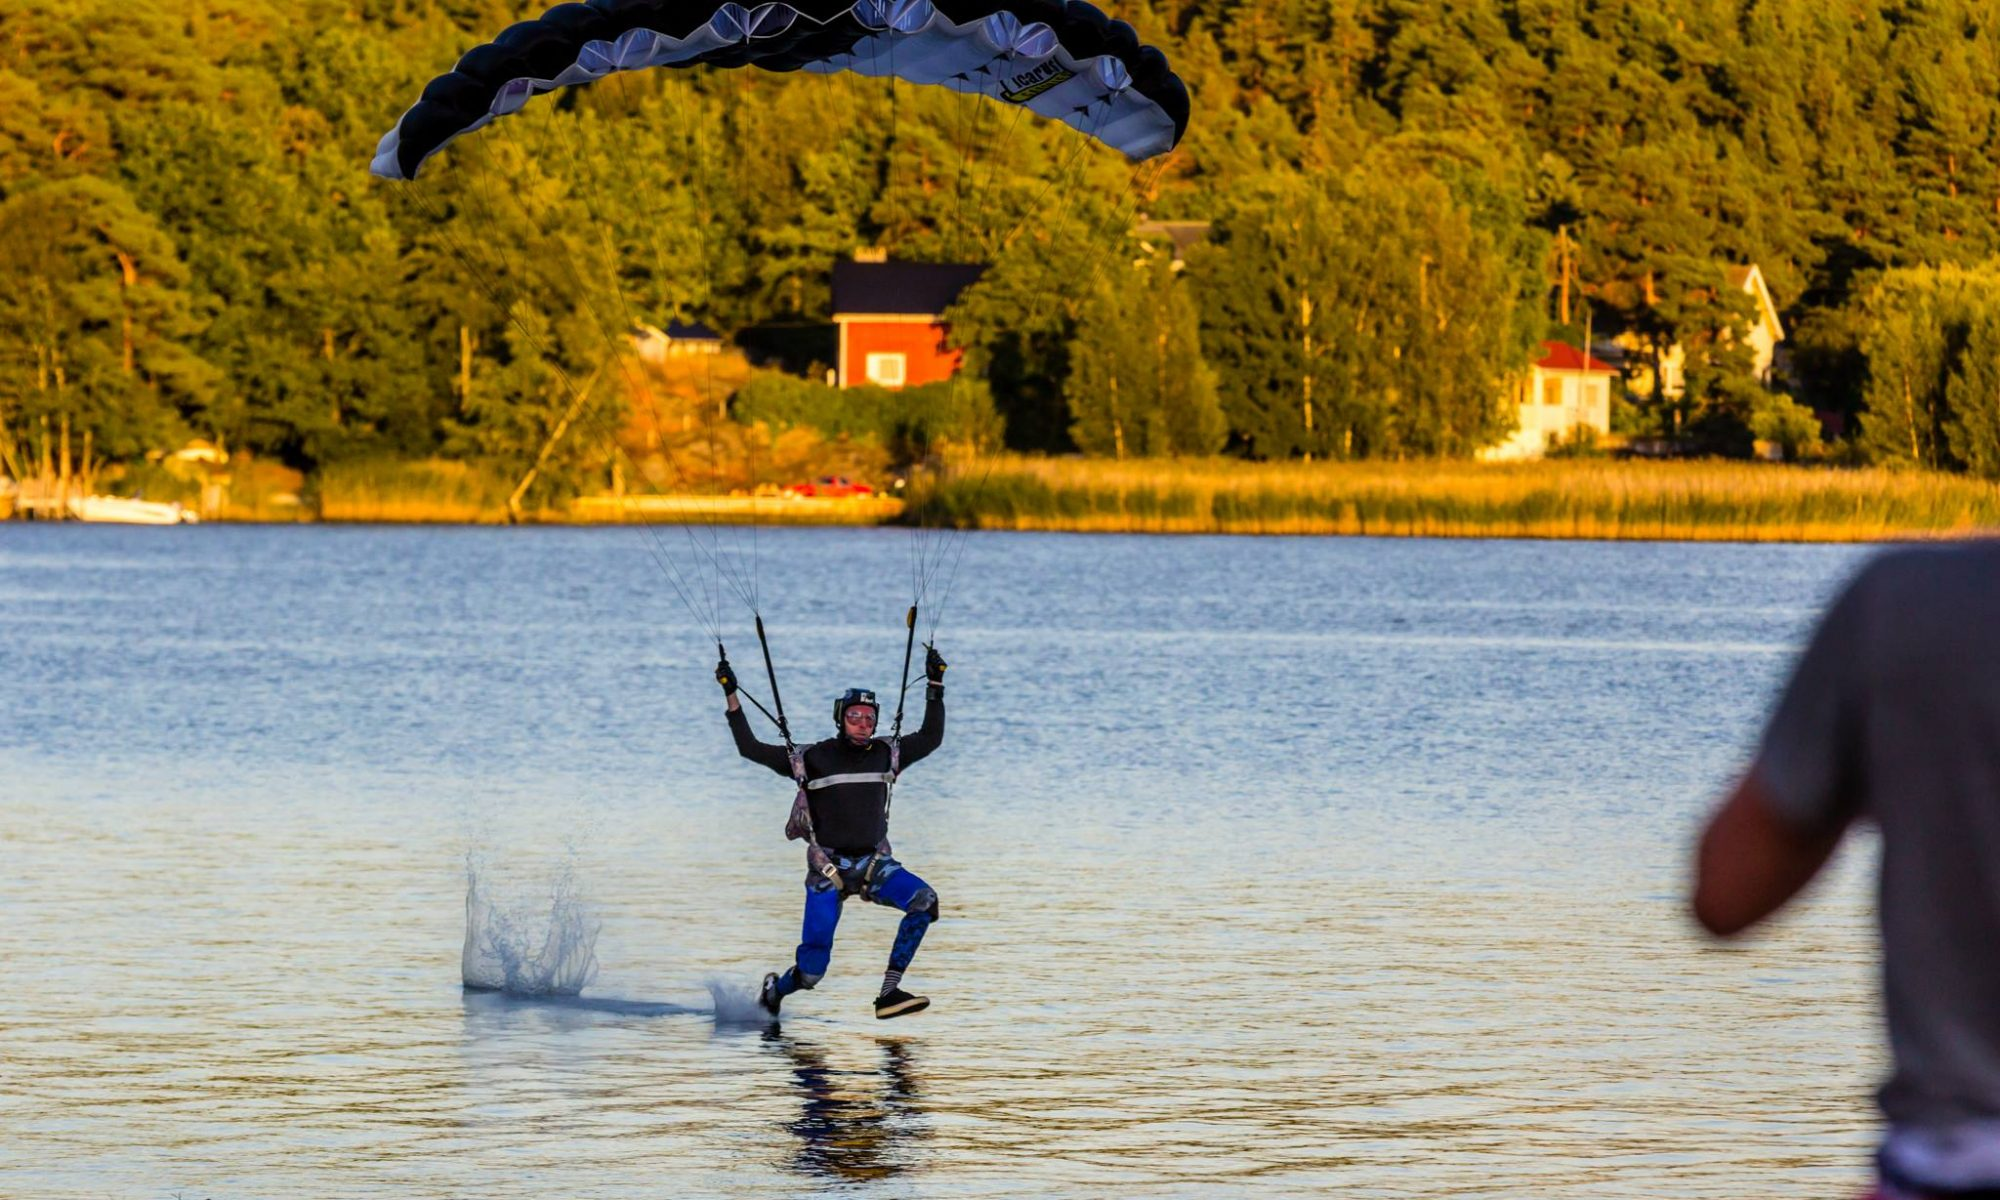 Skydive Turku